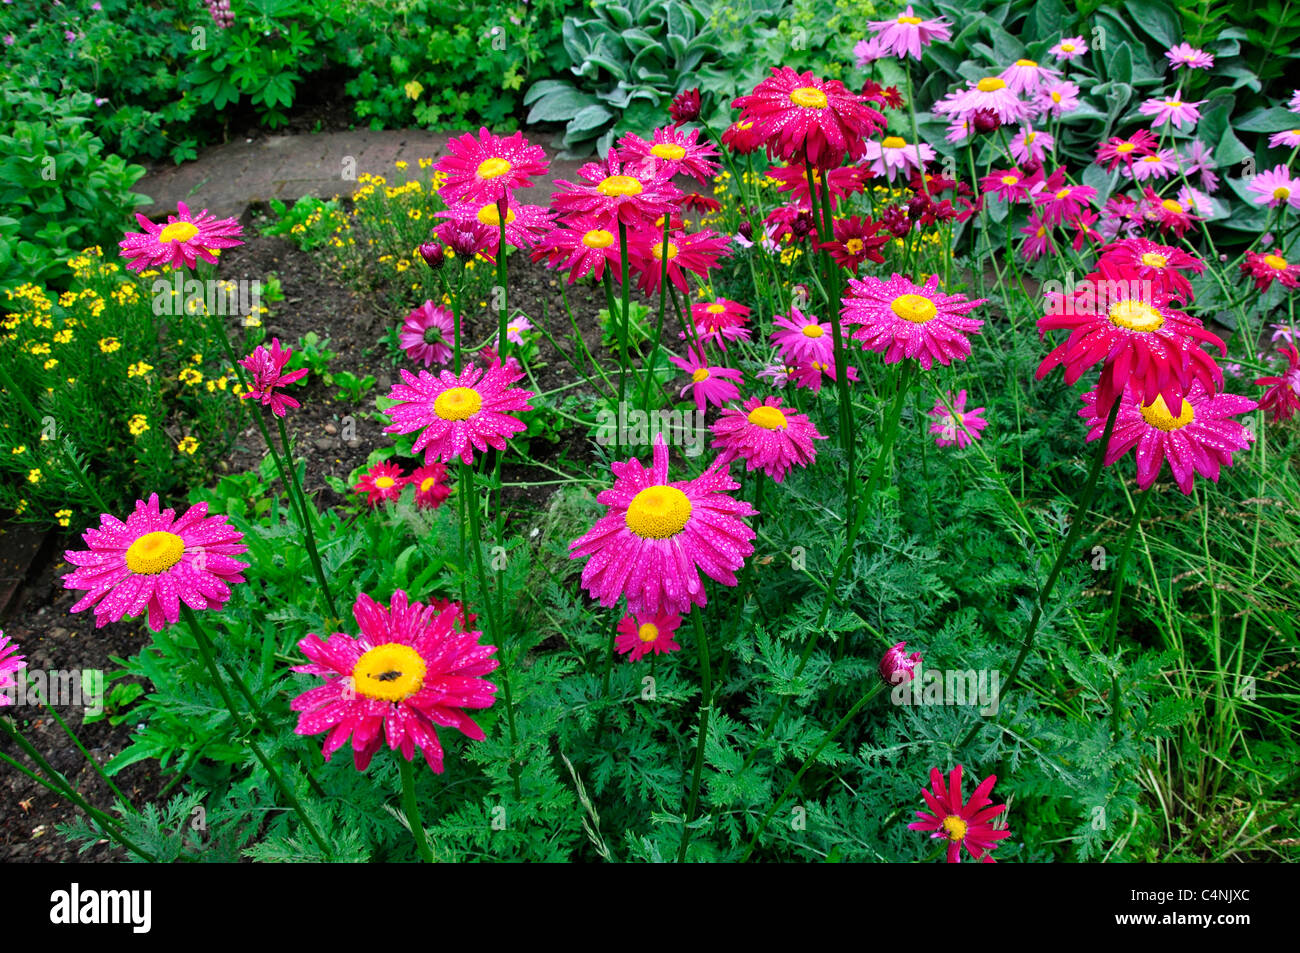 Perennial Flowers Stock Photos Perennial Flowers Stock Images Alamy